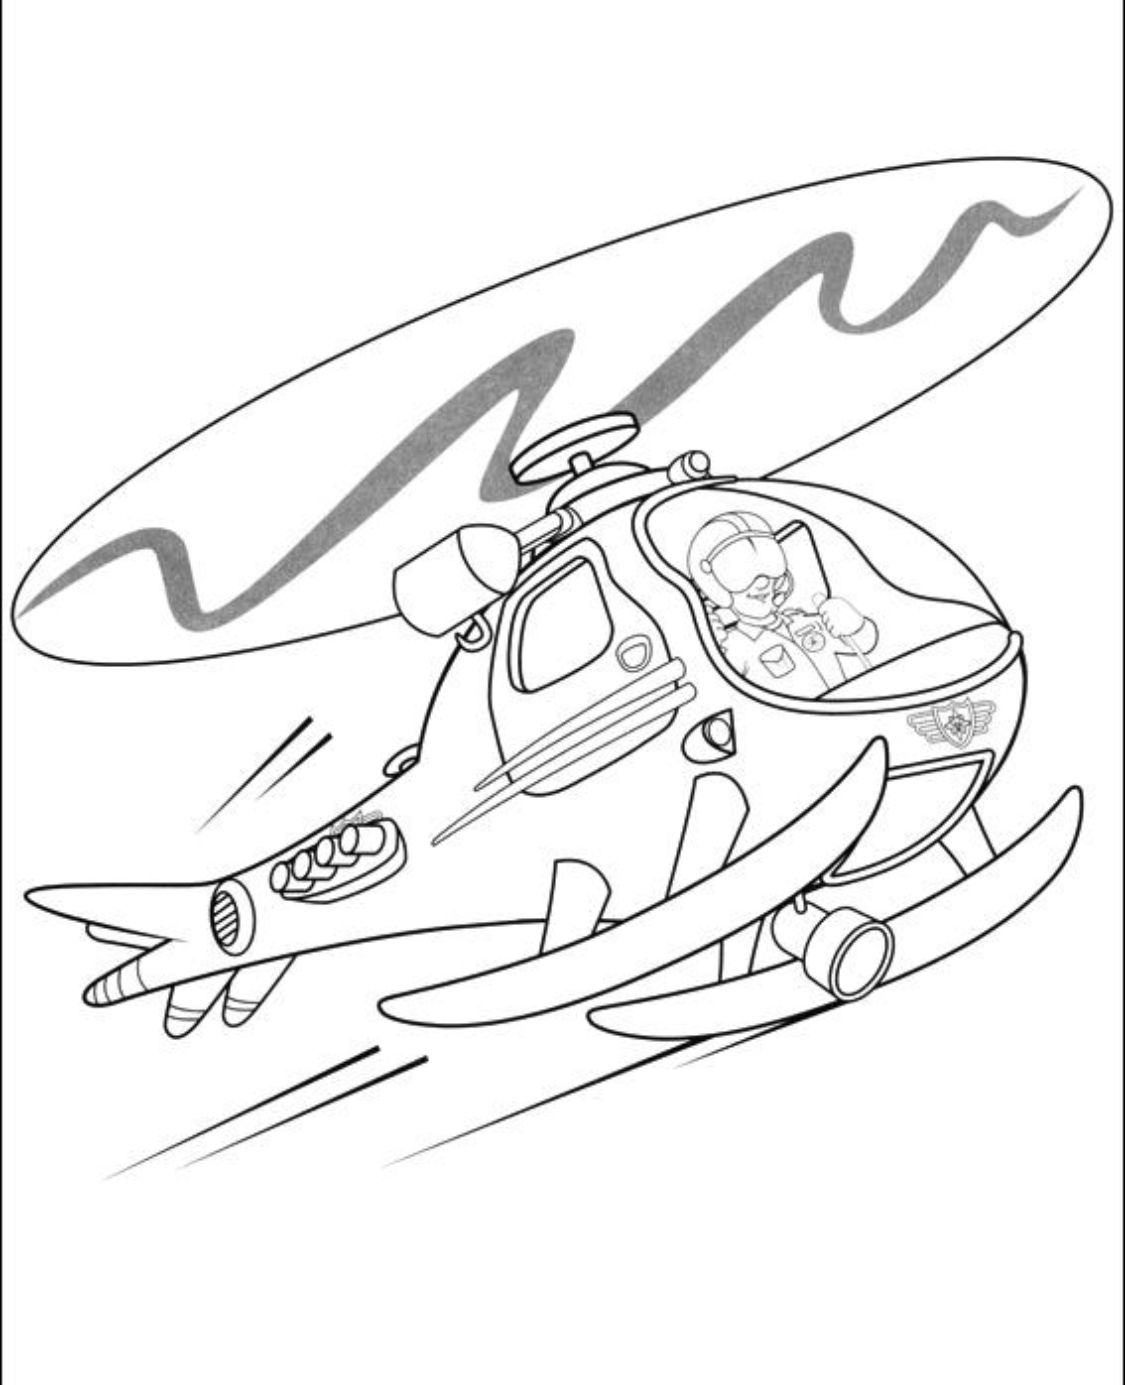 Pin By Tonnie On Sam Fireman Sam Cool Coloring Pages Art Drawings For Kids